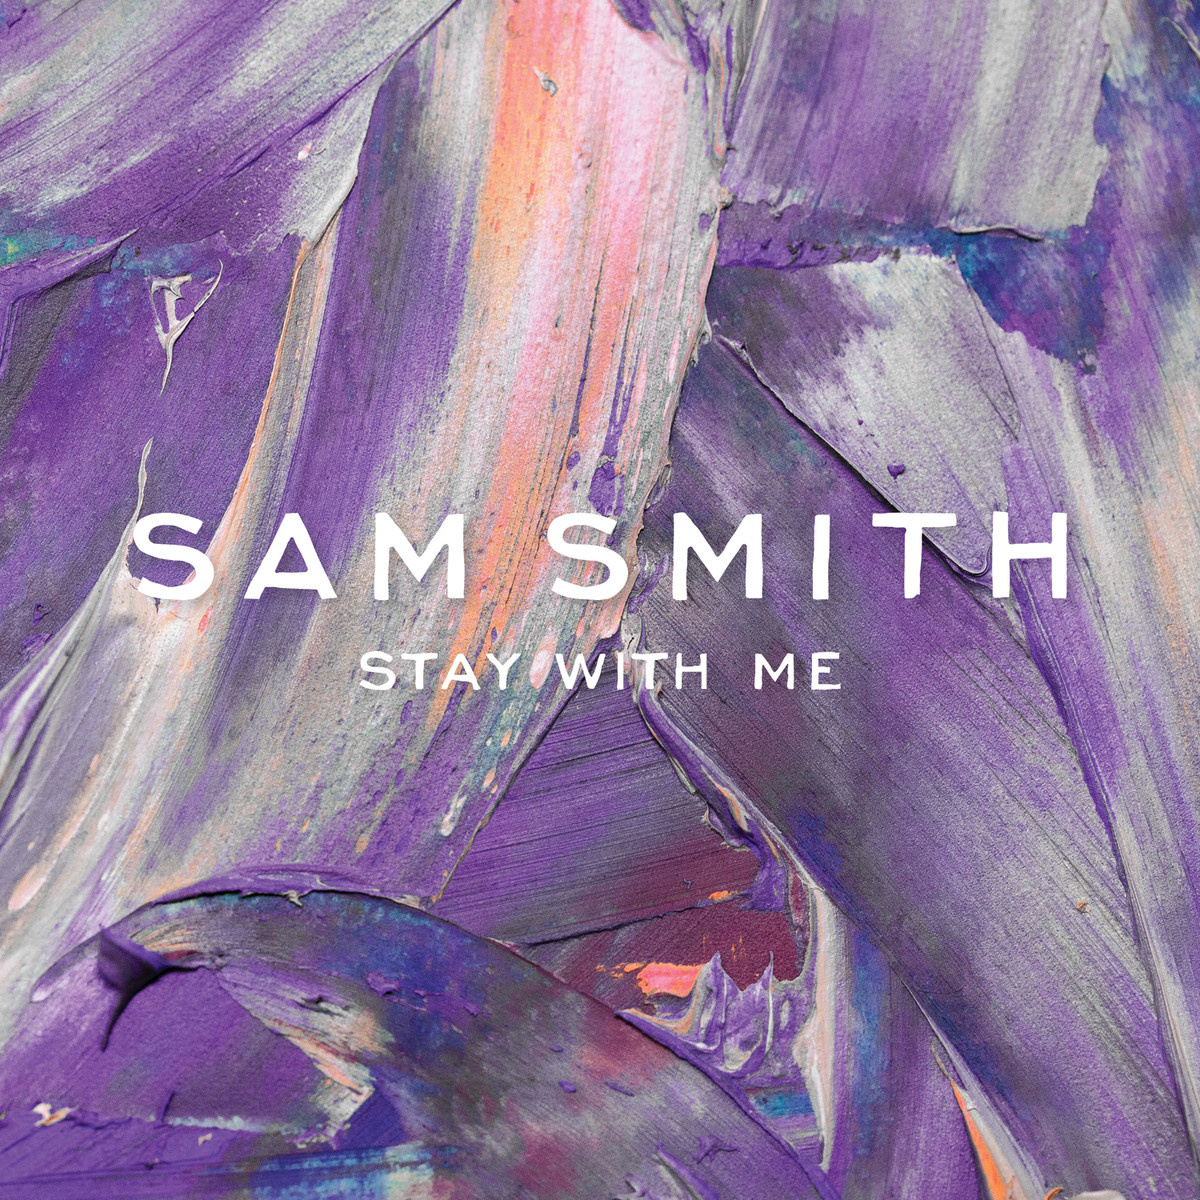 Sam Smith Stay With Me copertina